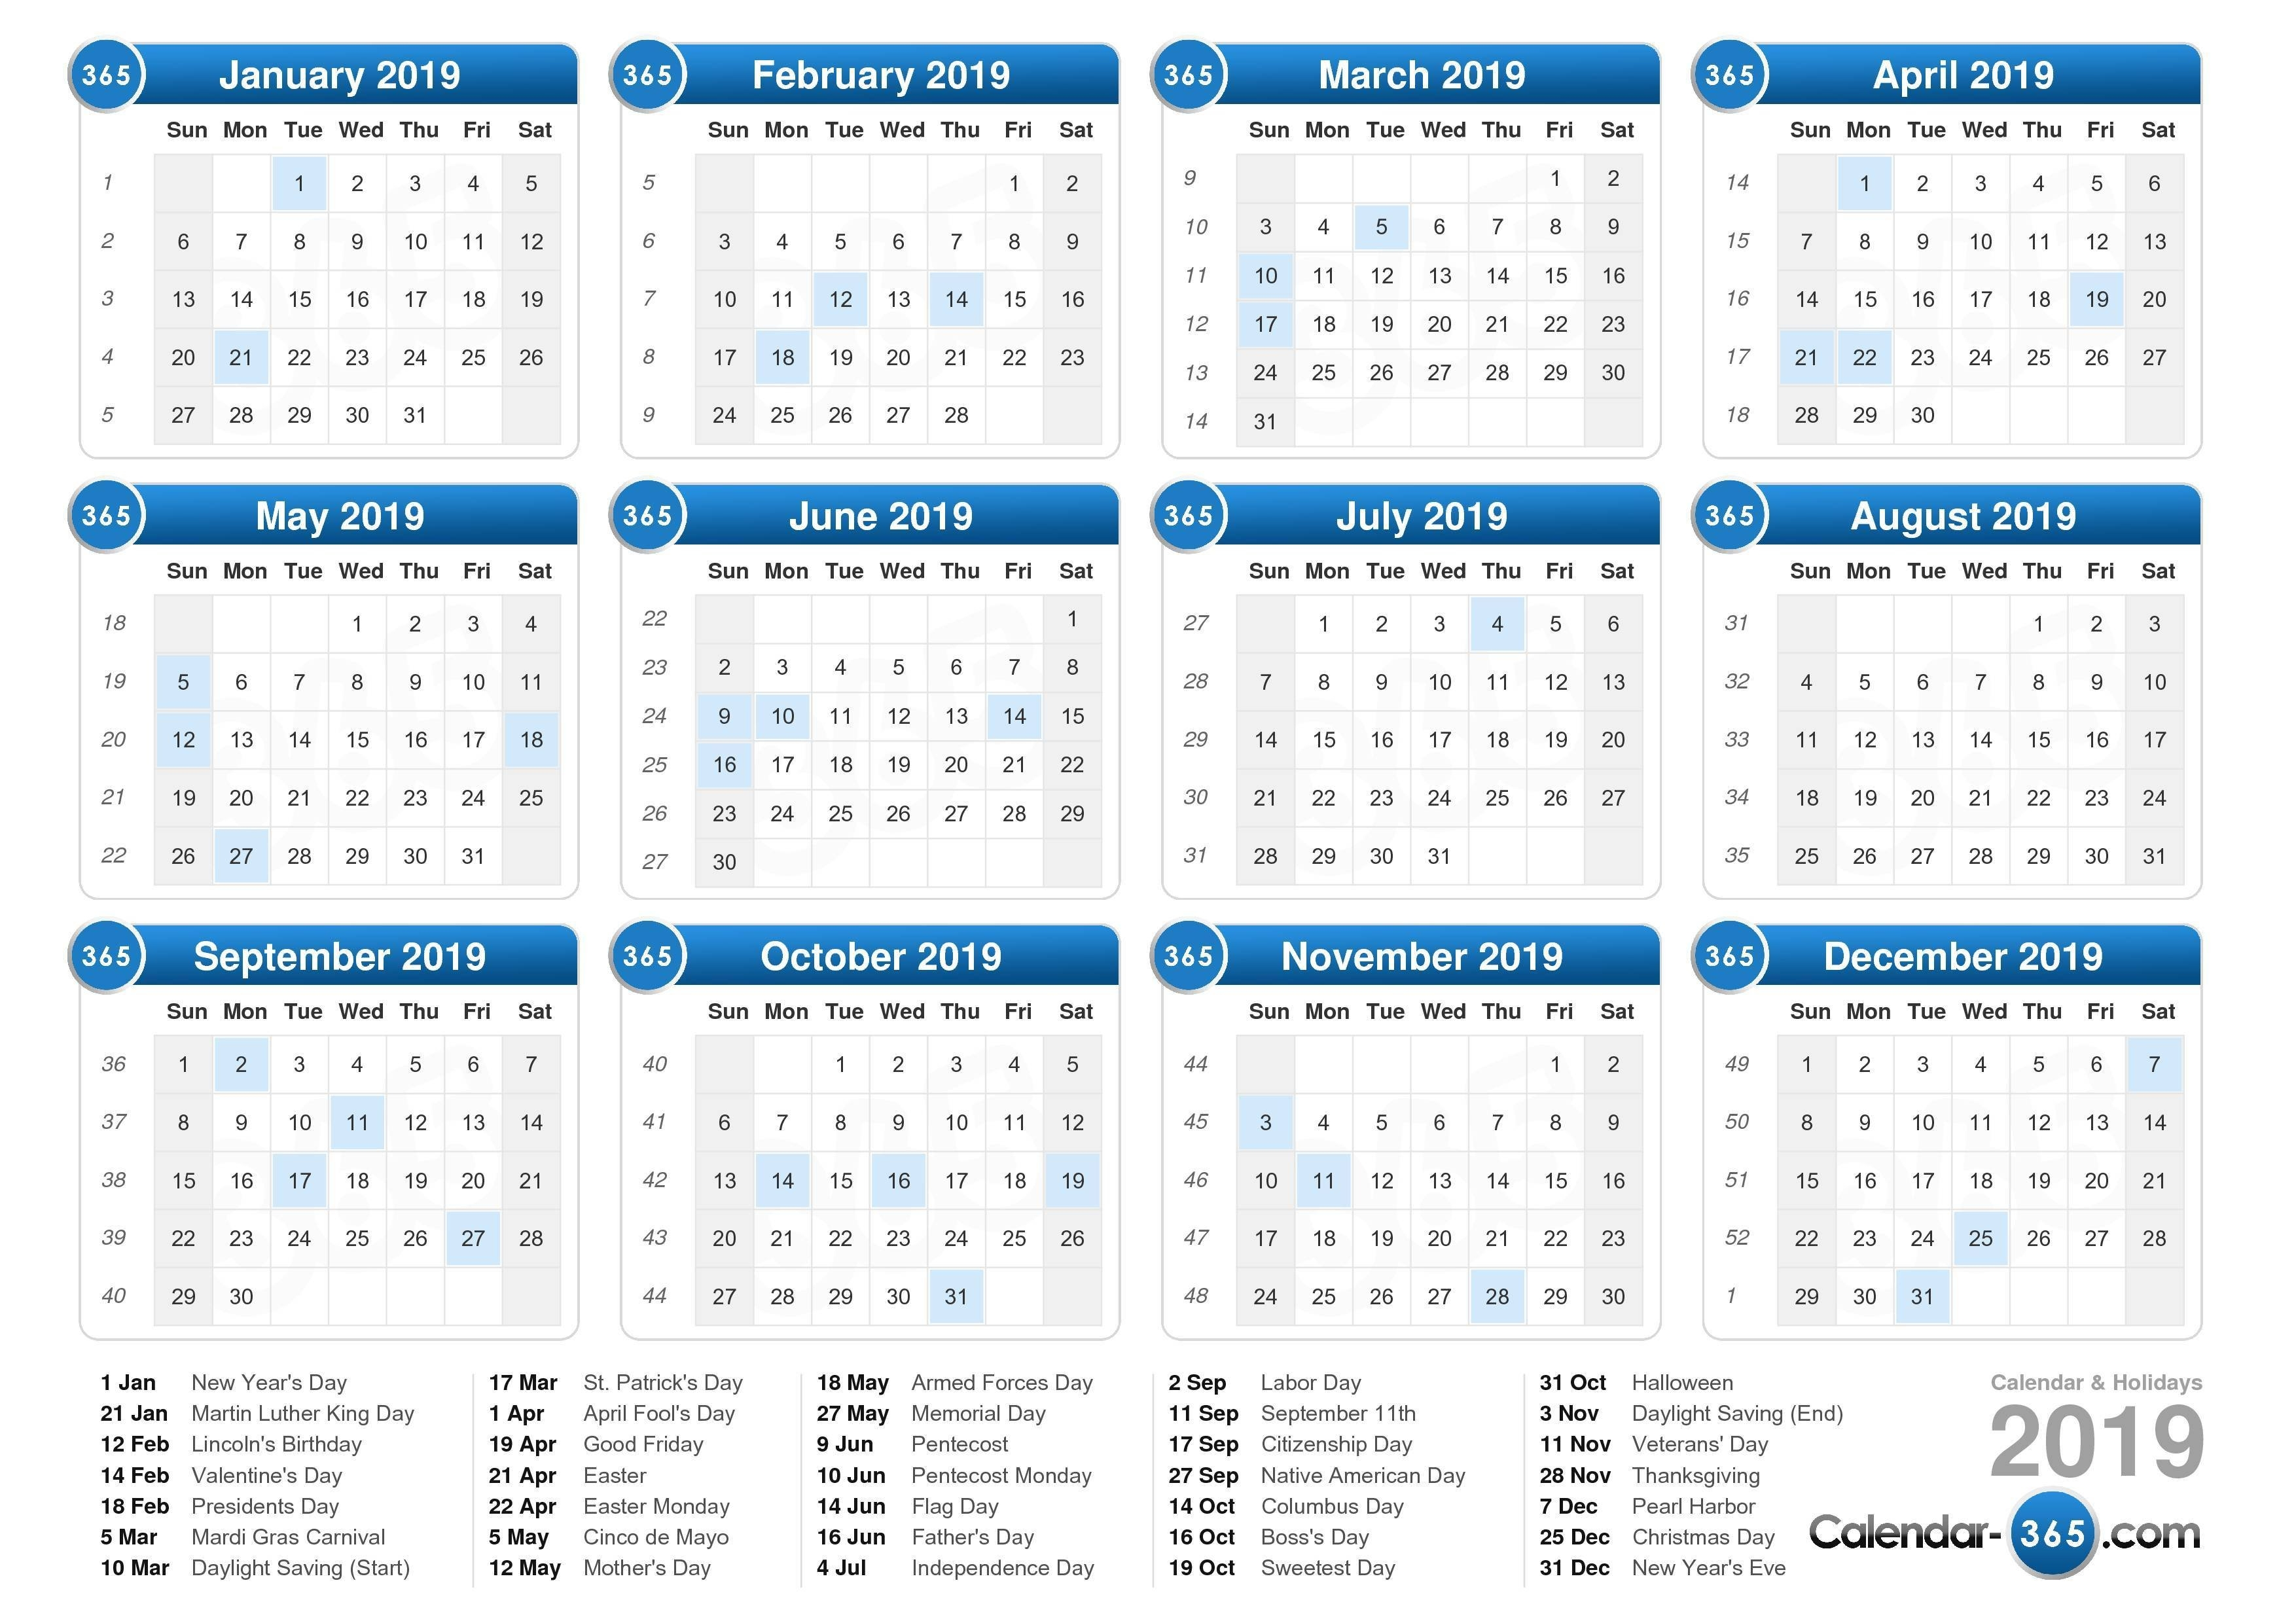 2019 Calendar Calendar 2019 With Holidays